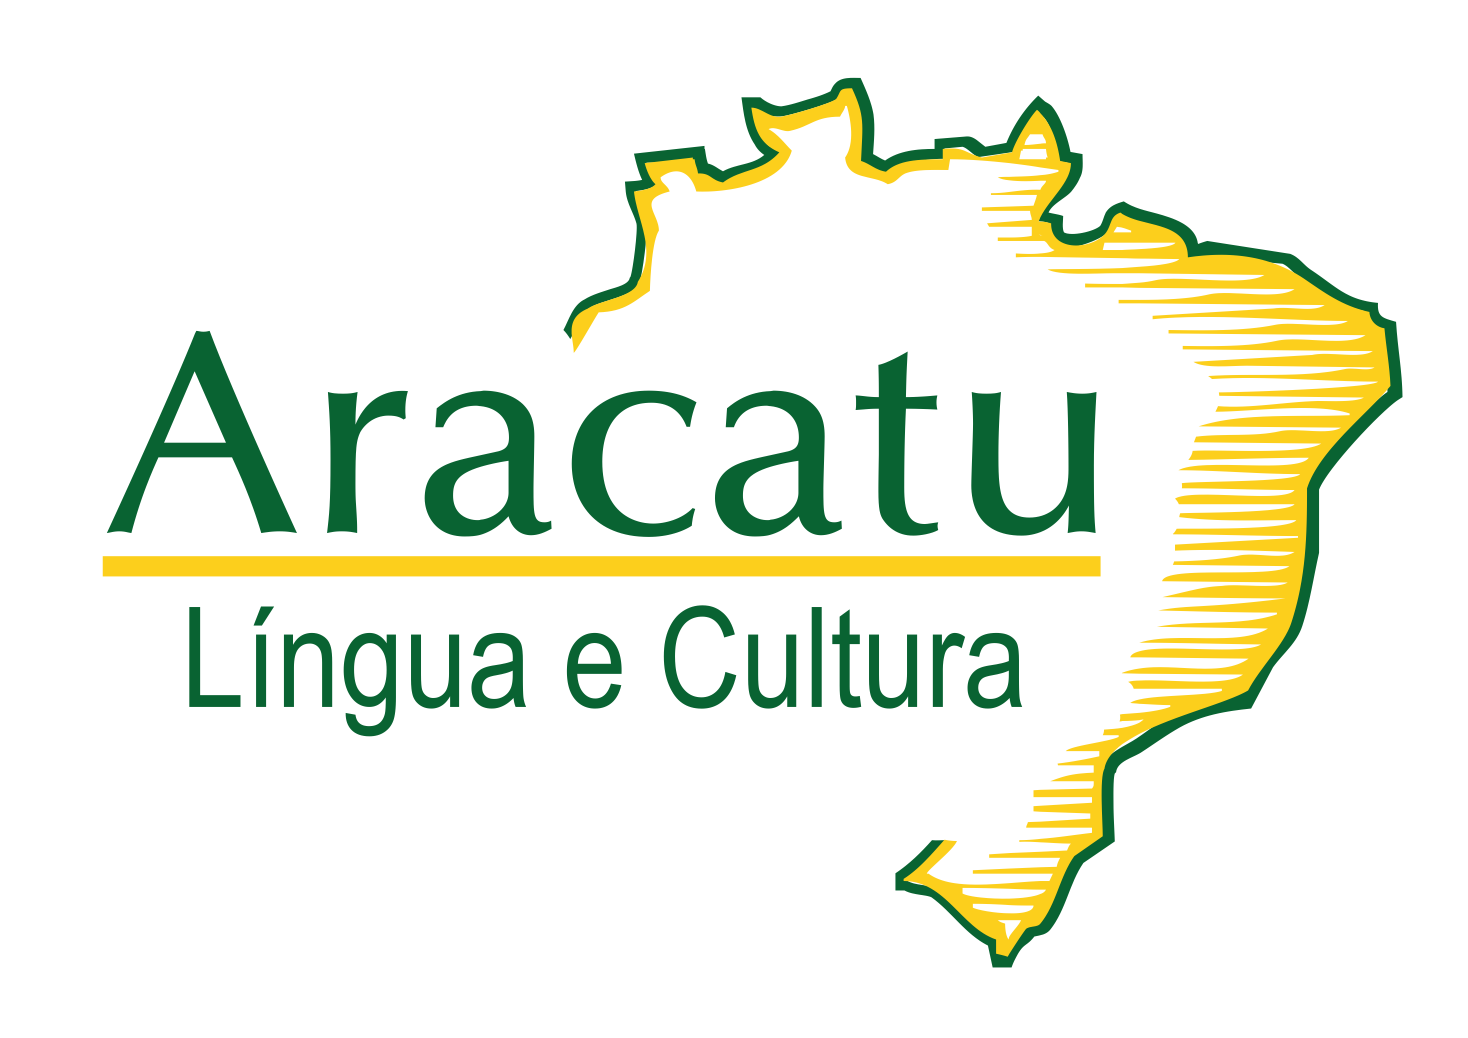 Instituto Aracatu